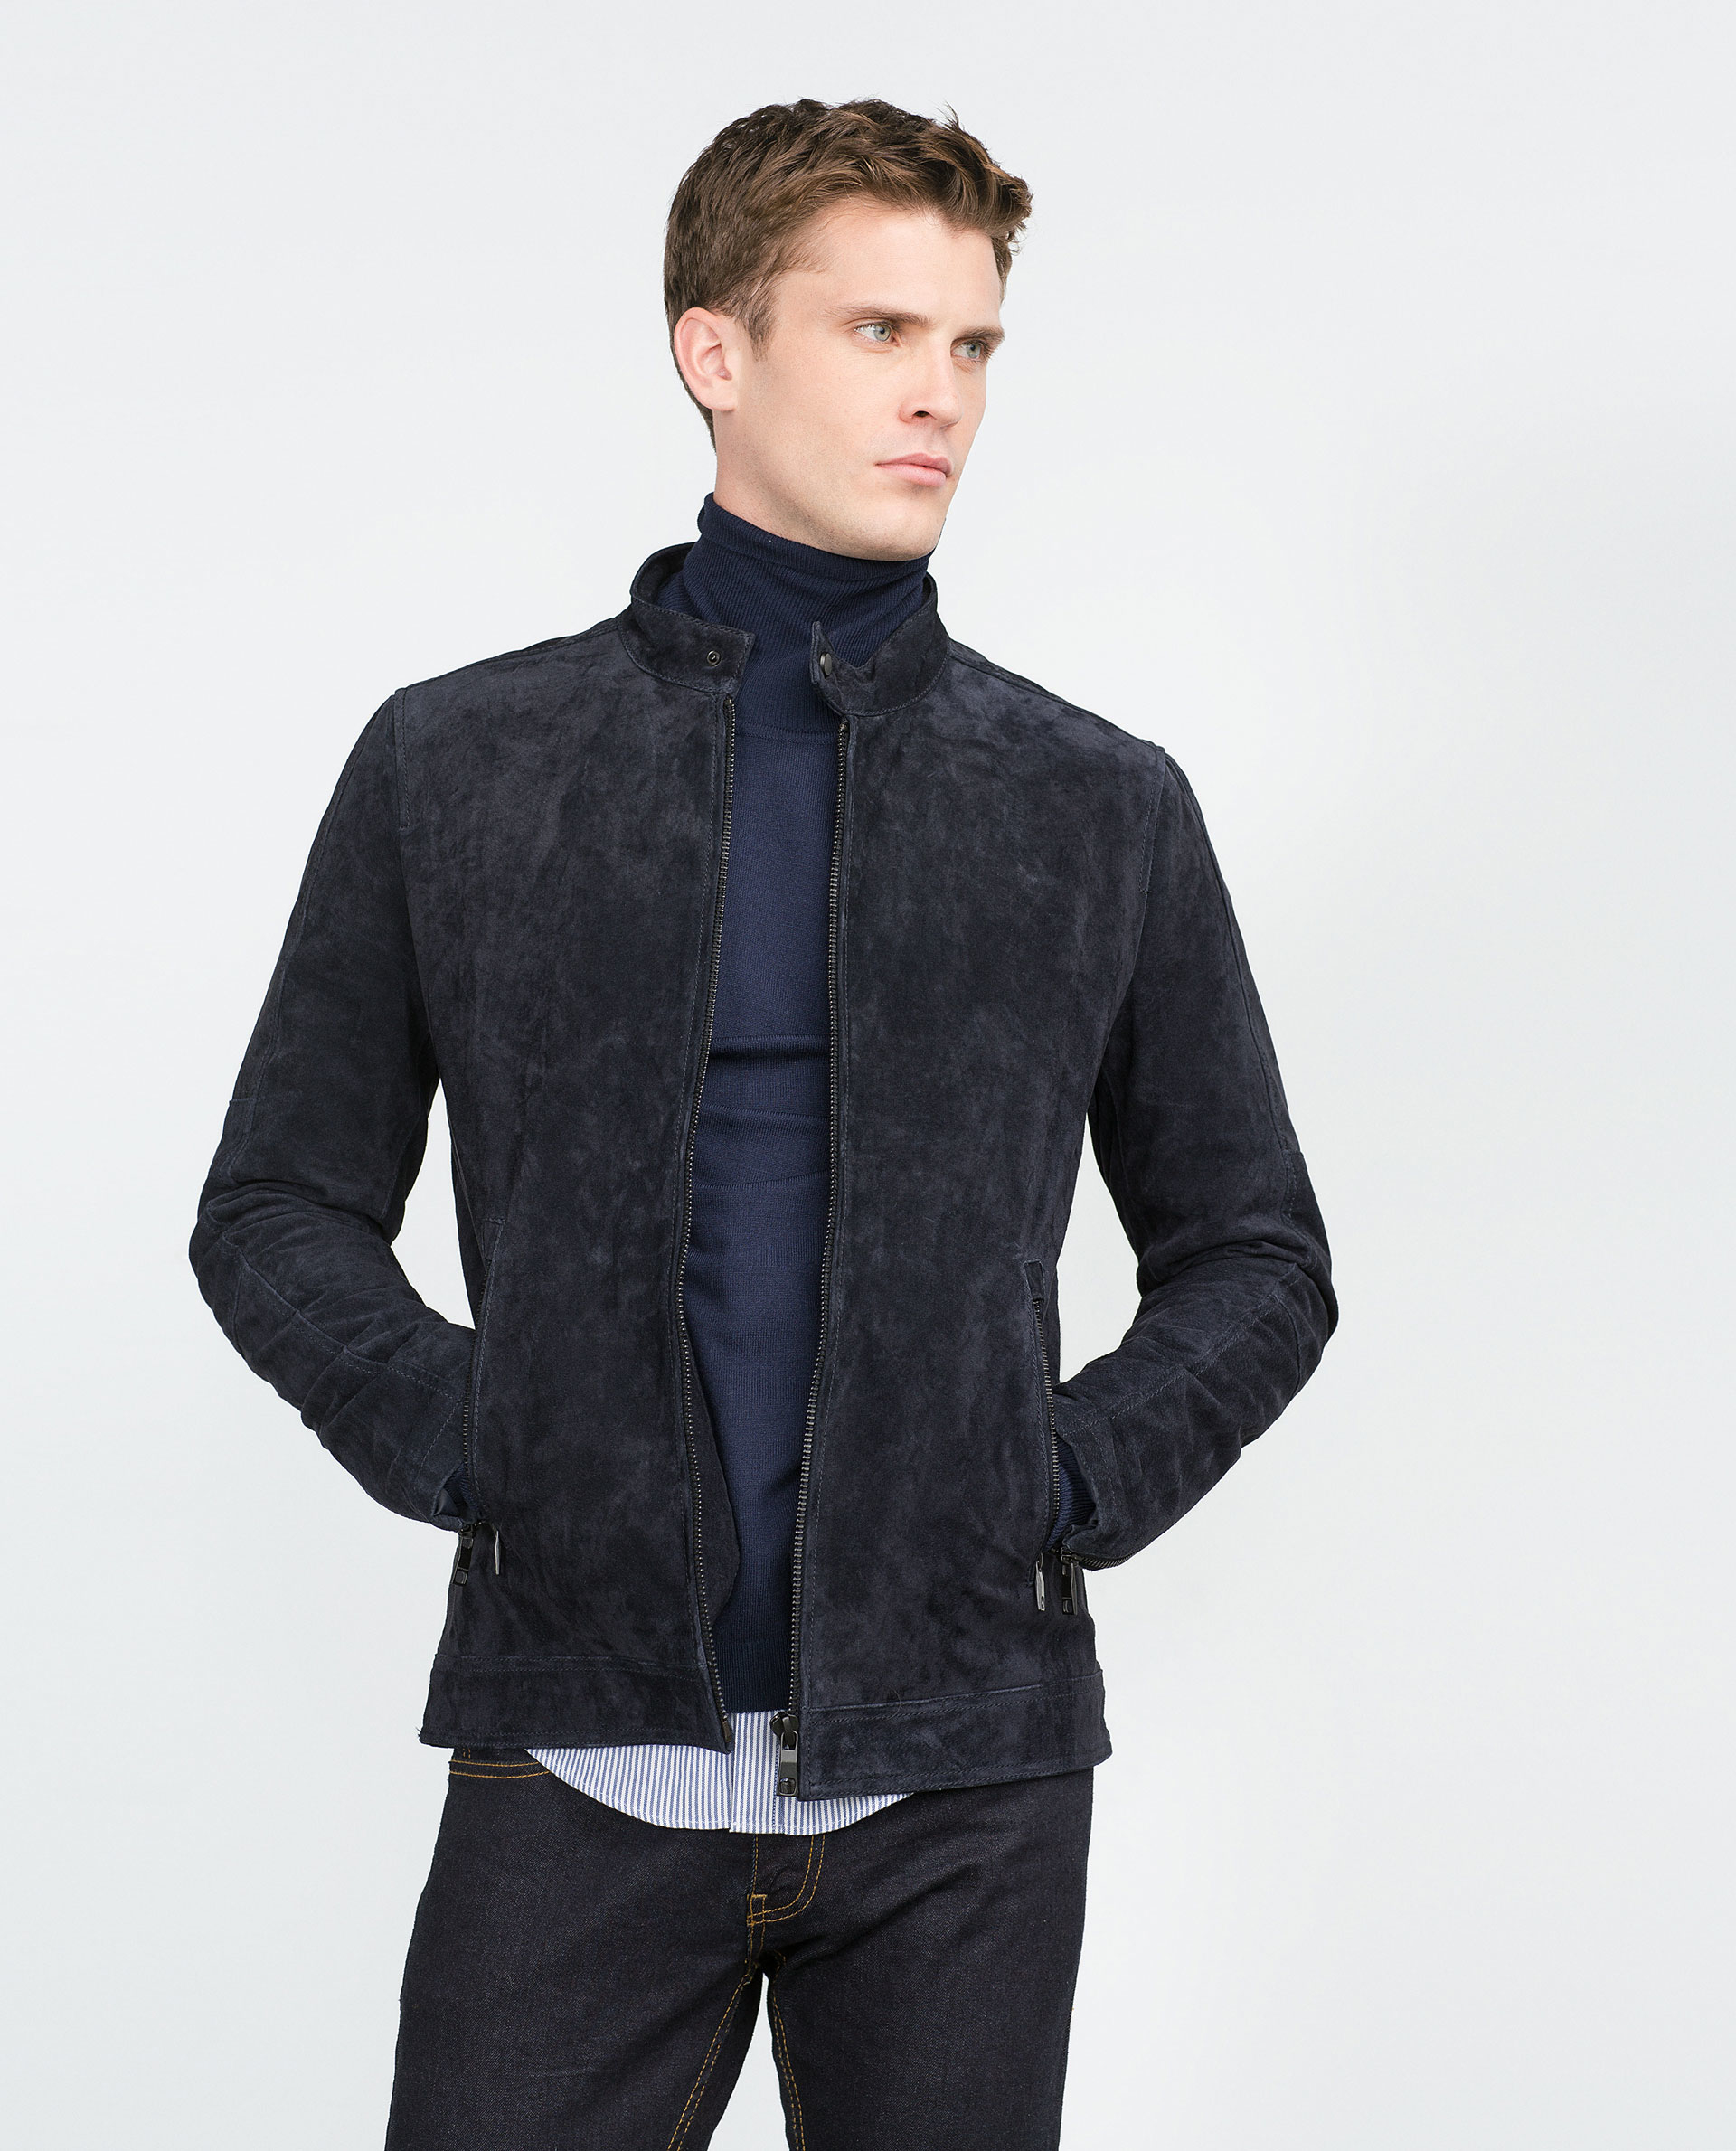 Zara Navy Split Suede Jacket In Blue For Men Lyst